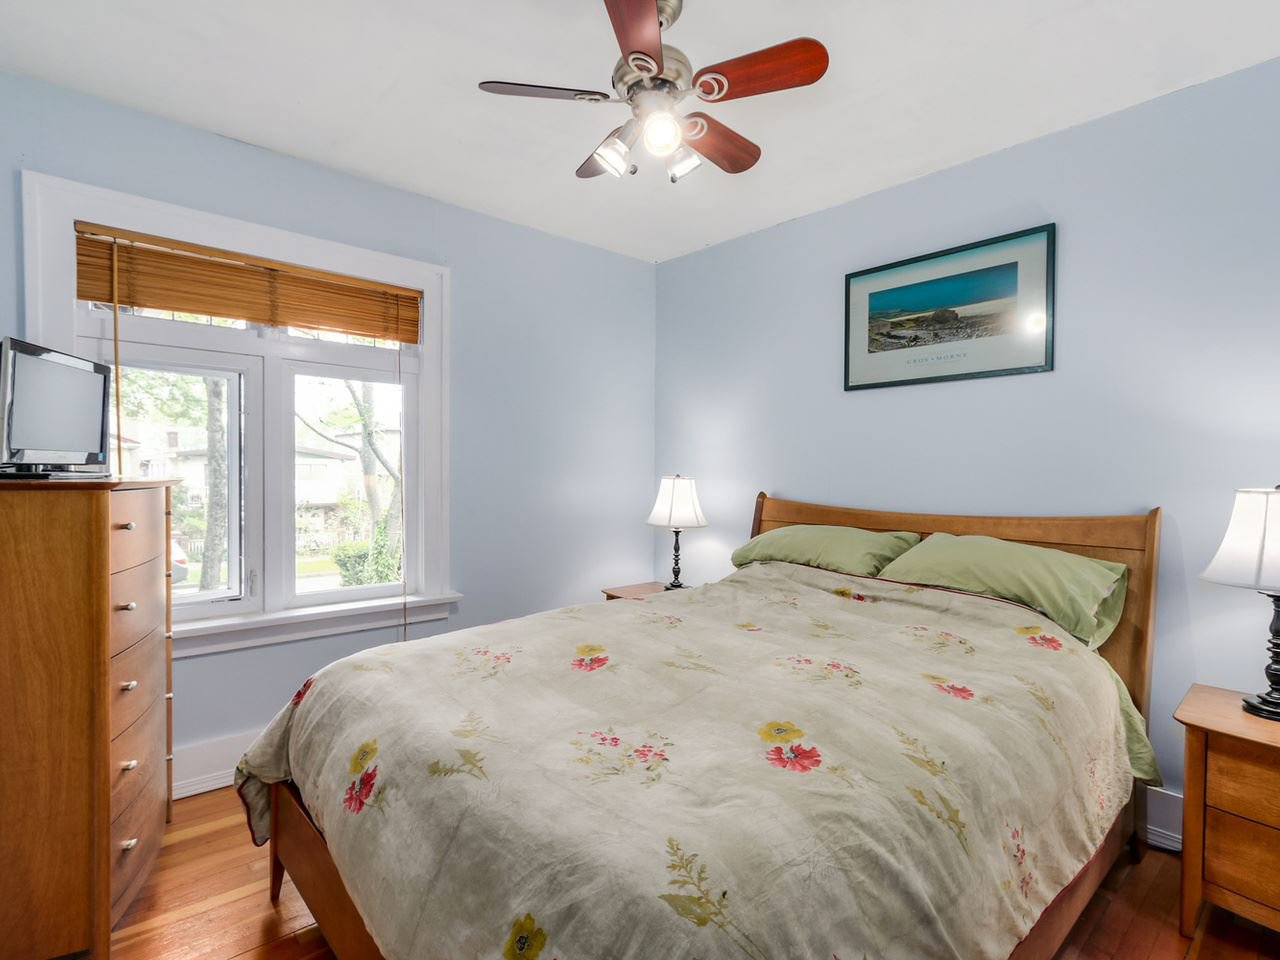 Photo 10: Photos: 1760 E 37TH AVENUE in Vancouver: Victoria VE House for sale (Vancouver East)  : MLS®# R2059026